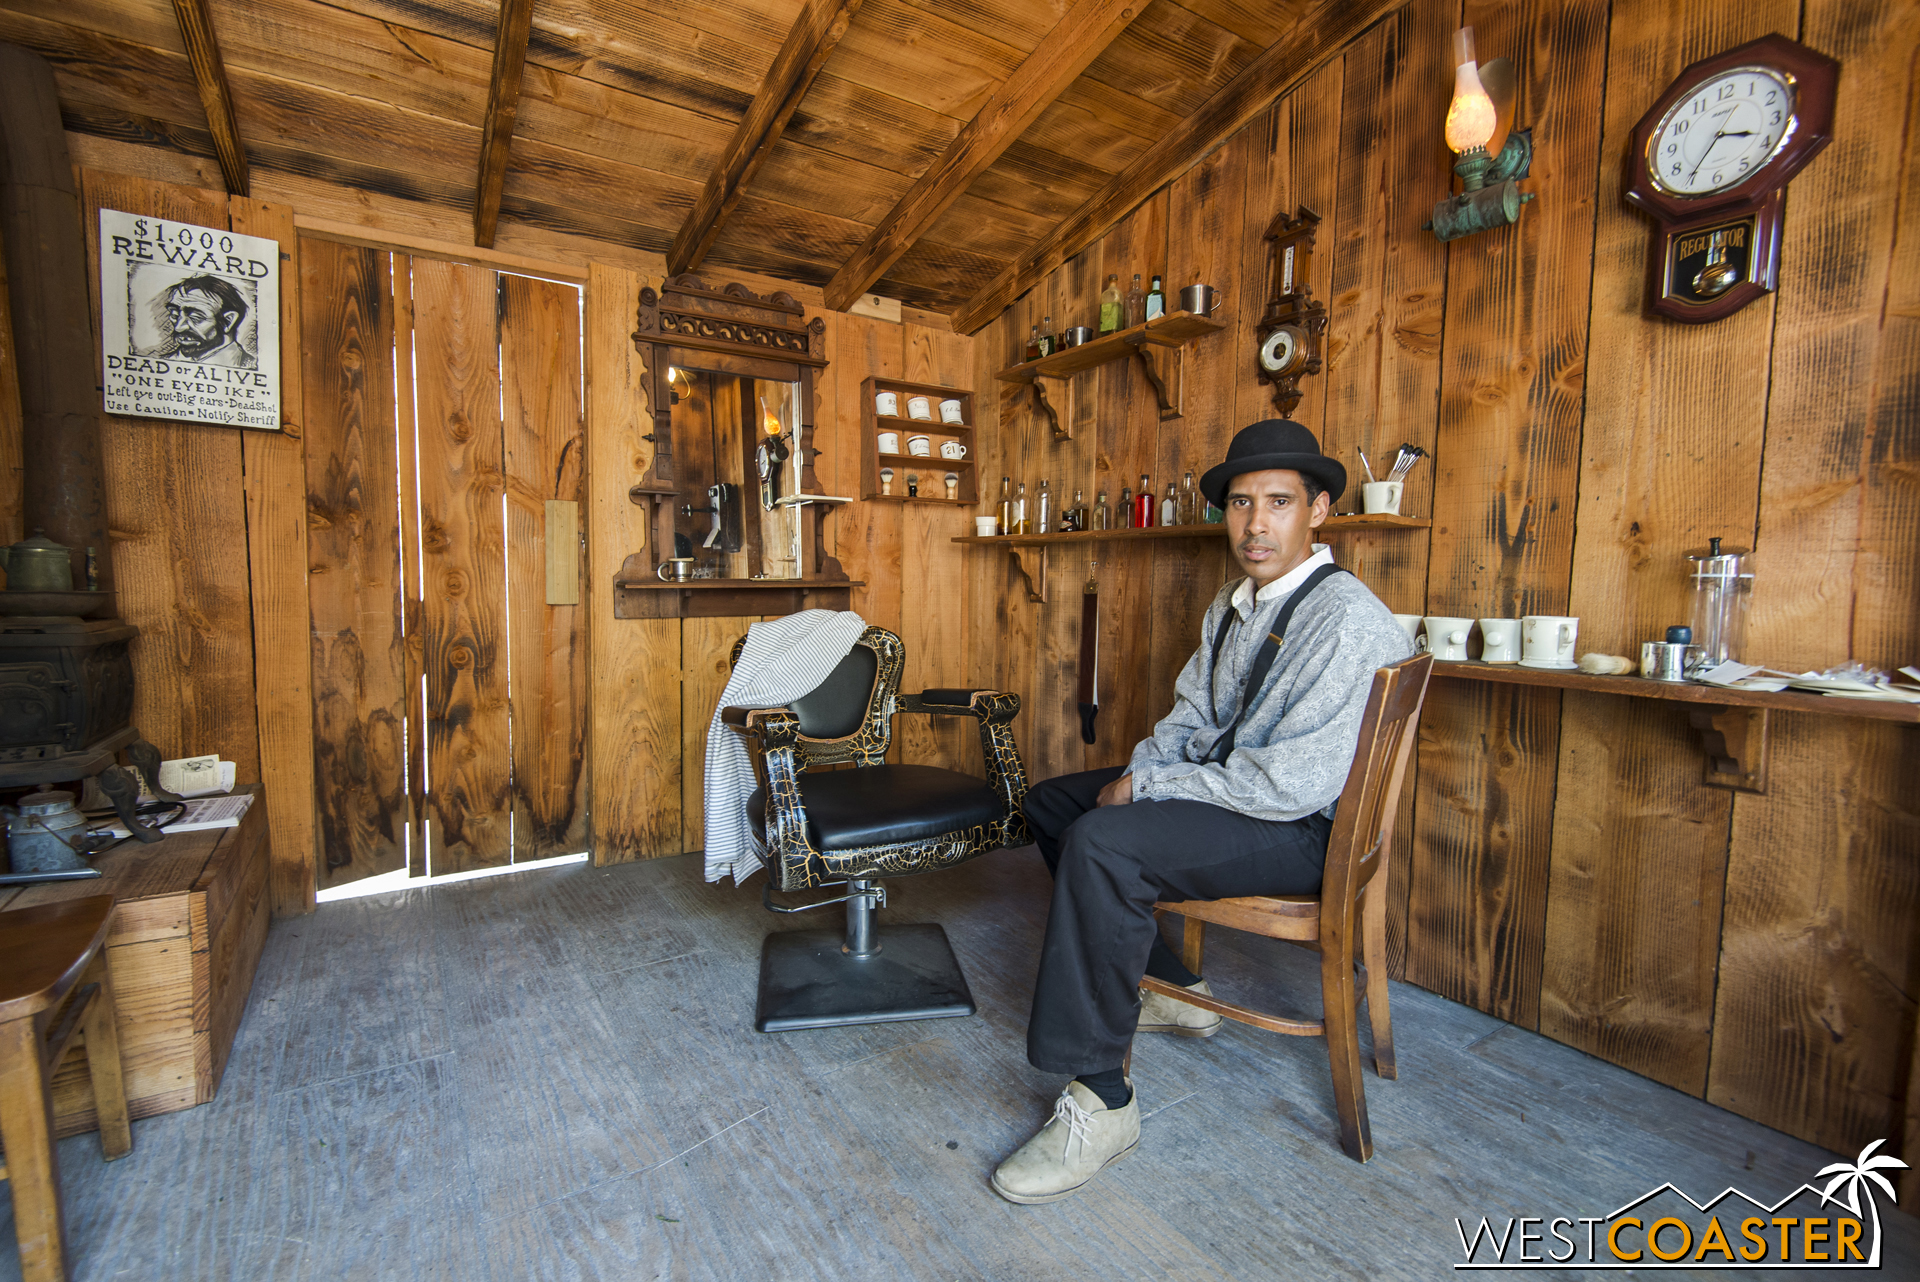 The barber of Calico, Mr. Percy Boyer, poses in his barbershop, one of the many peek-in's of Ghost Town opened up for Ghost Town Alive!